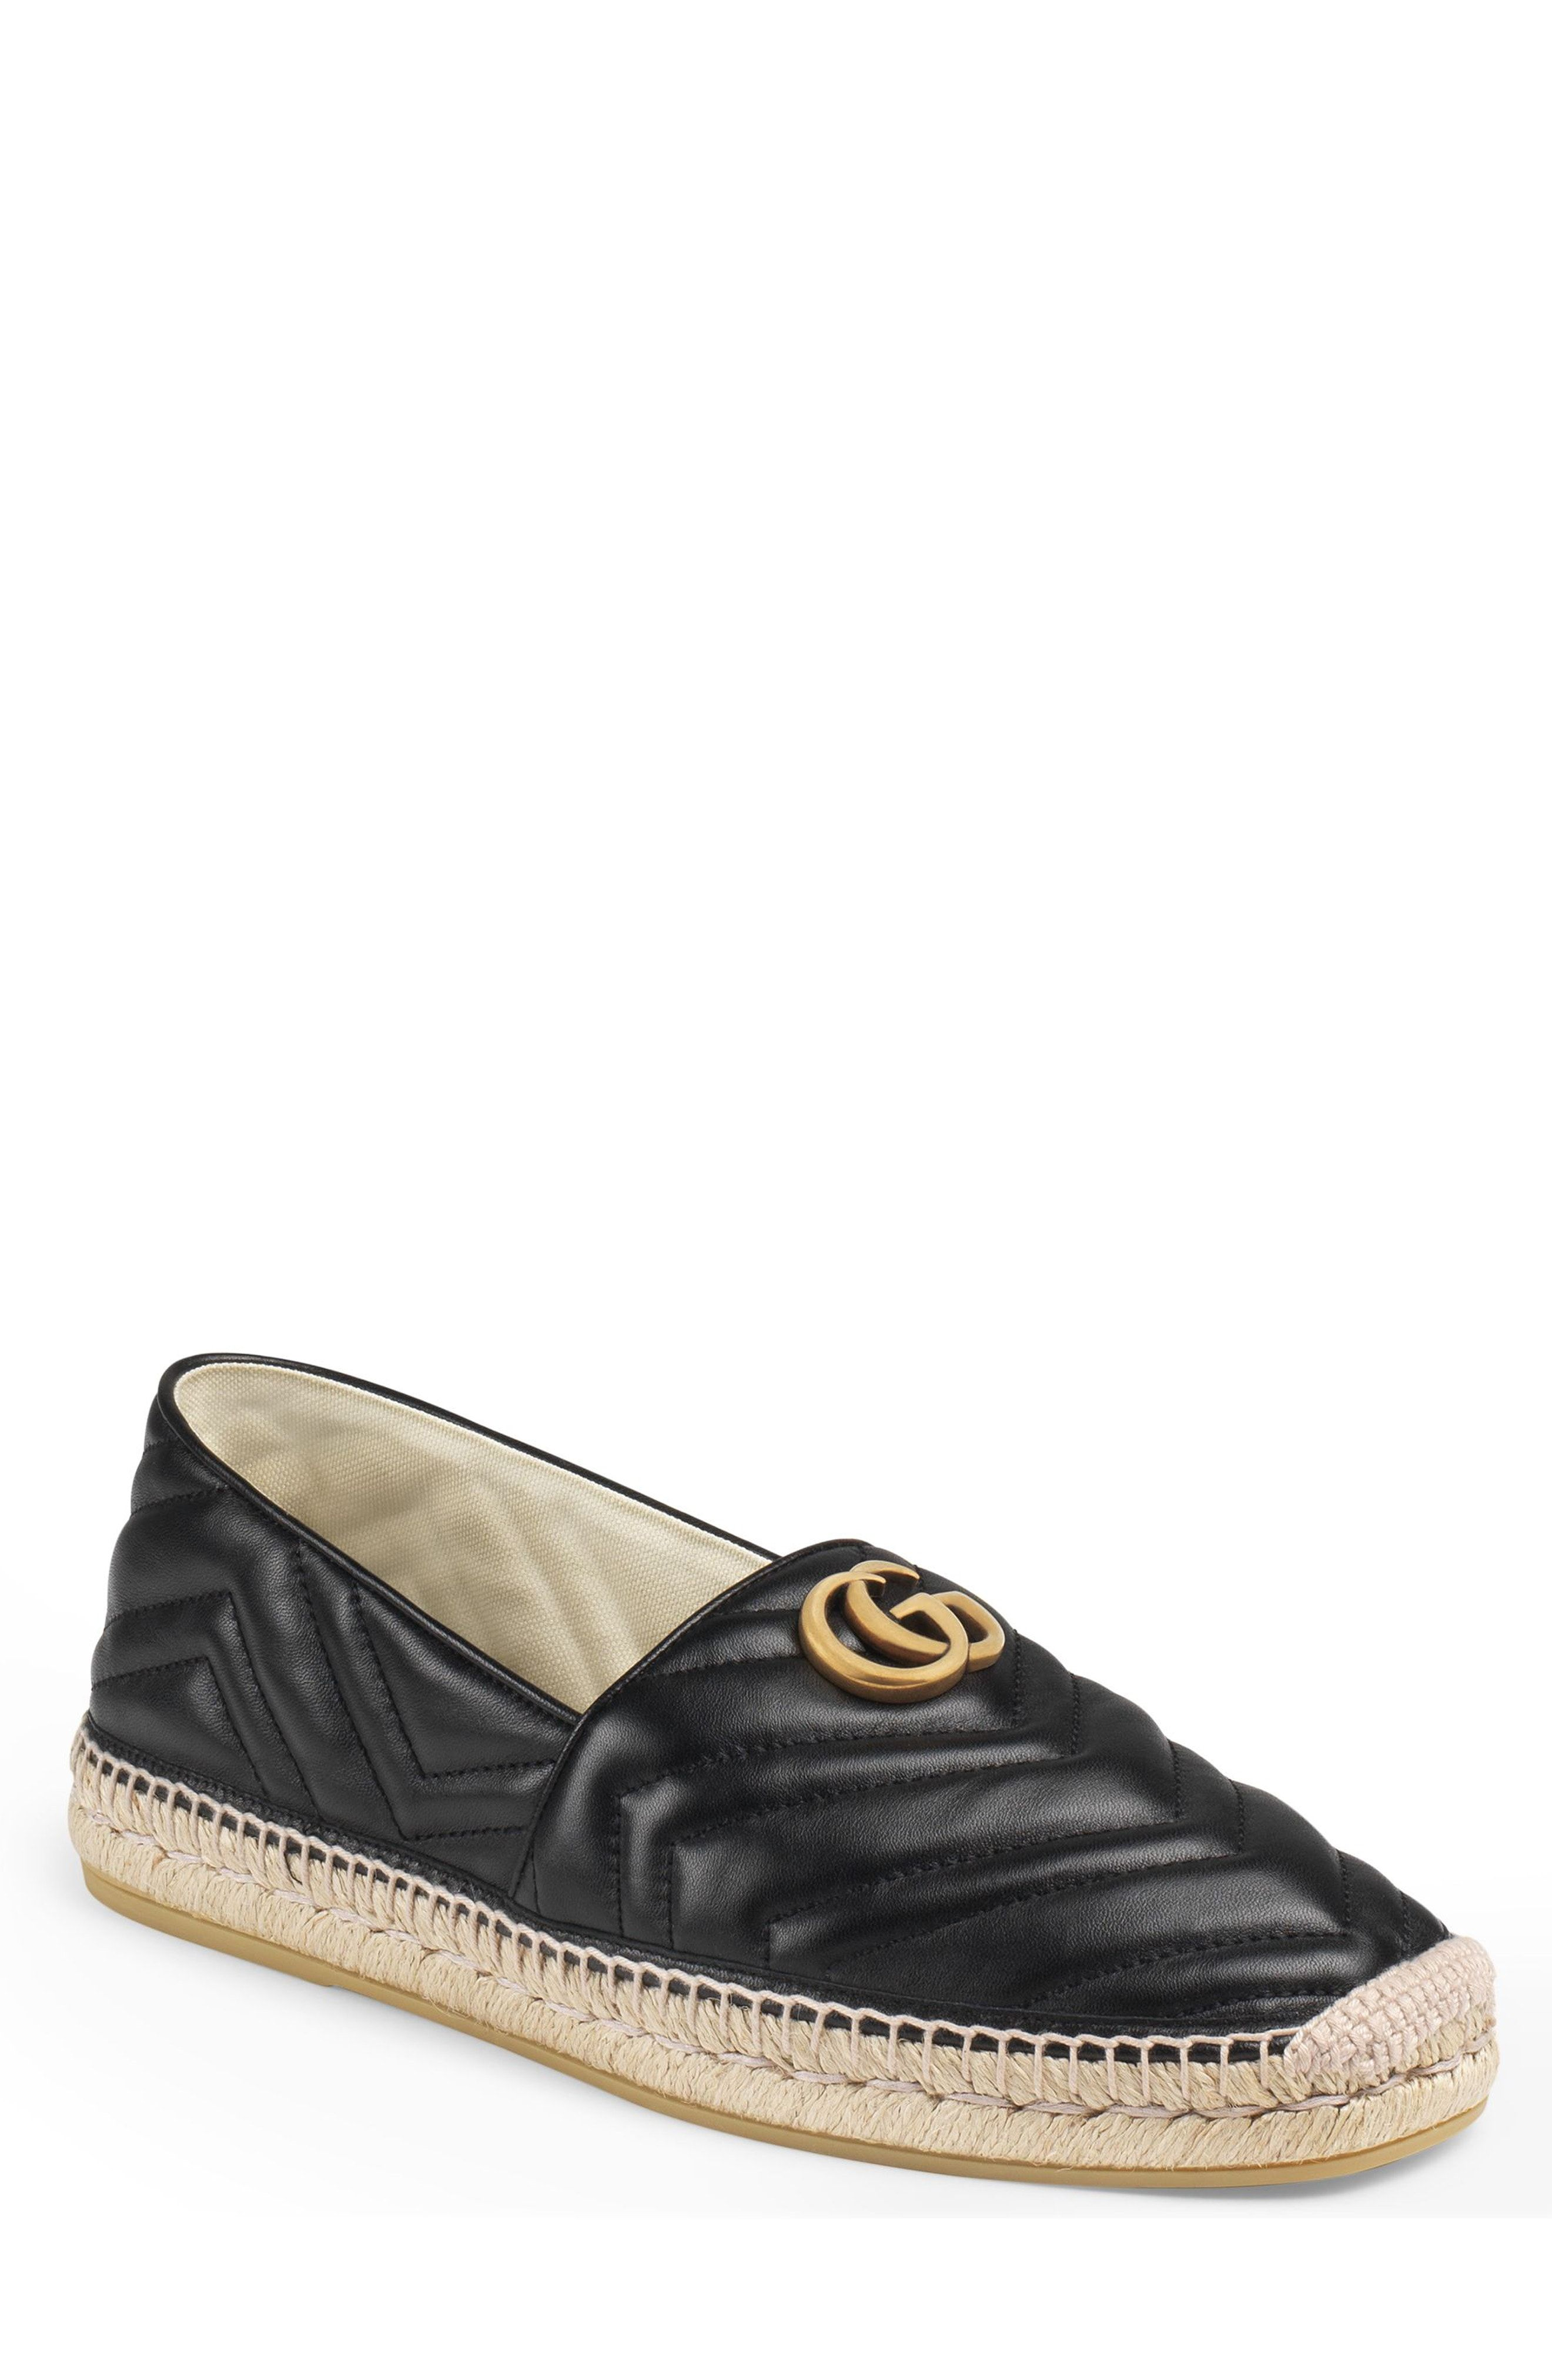 b6847a35d74 GUCCI ALEJANDRO QUILTED ESPADRILLE.  gucci  shoes